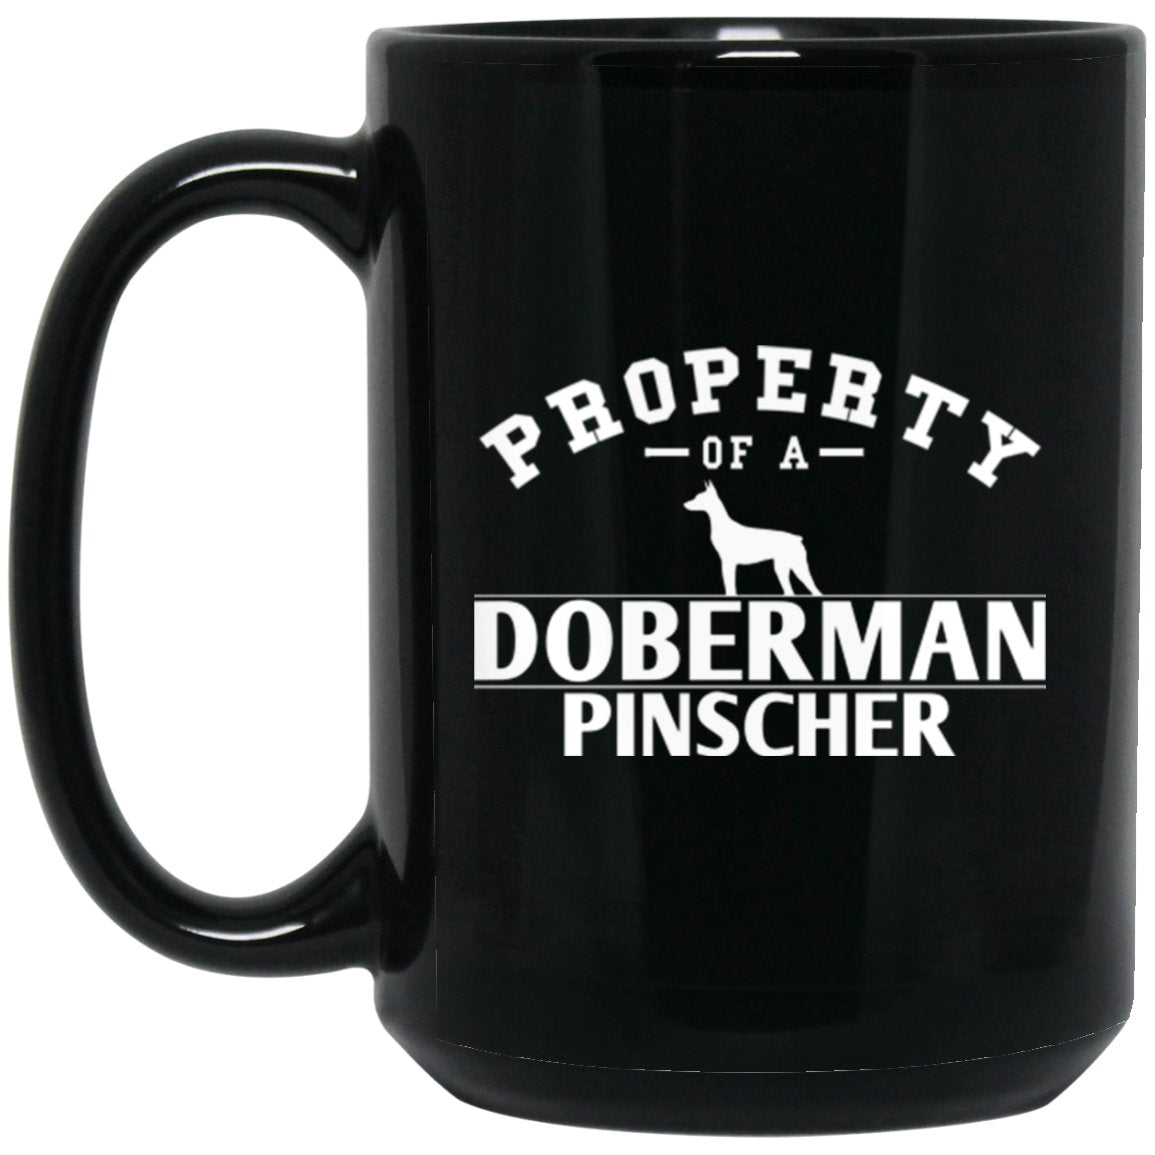 Doberman Pinscher - Property of A Doberman Pinscher Large Black Mug